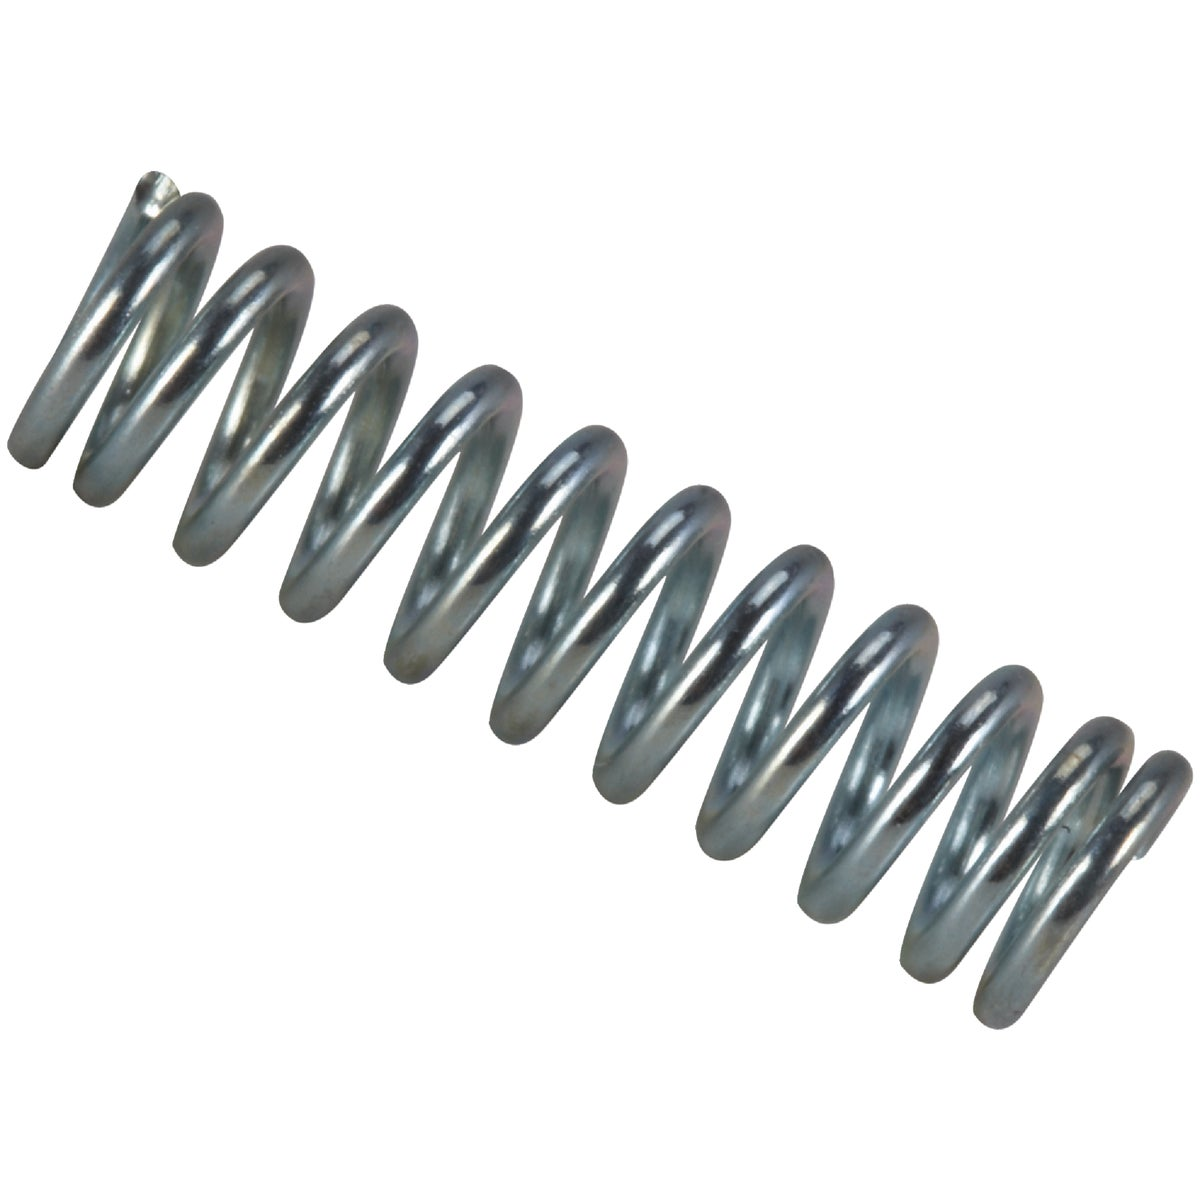 COMPRESSION SPRING - C-856 by Century Spring Corp